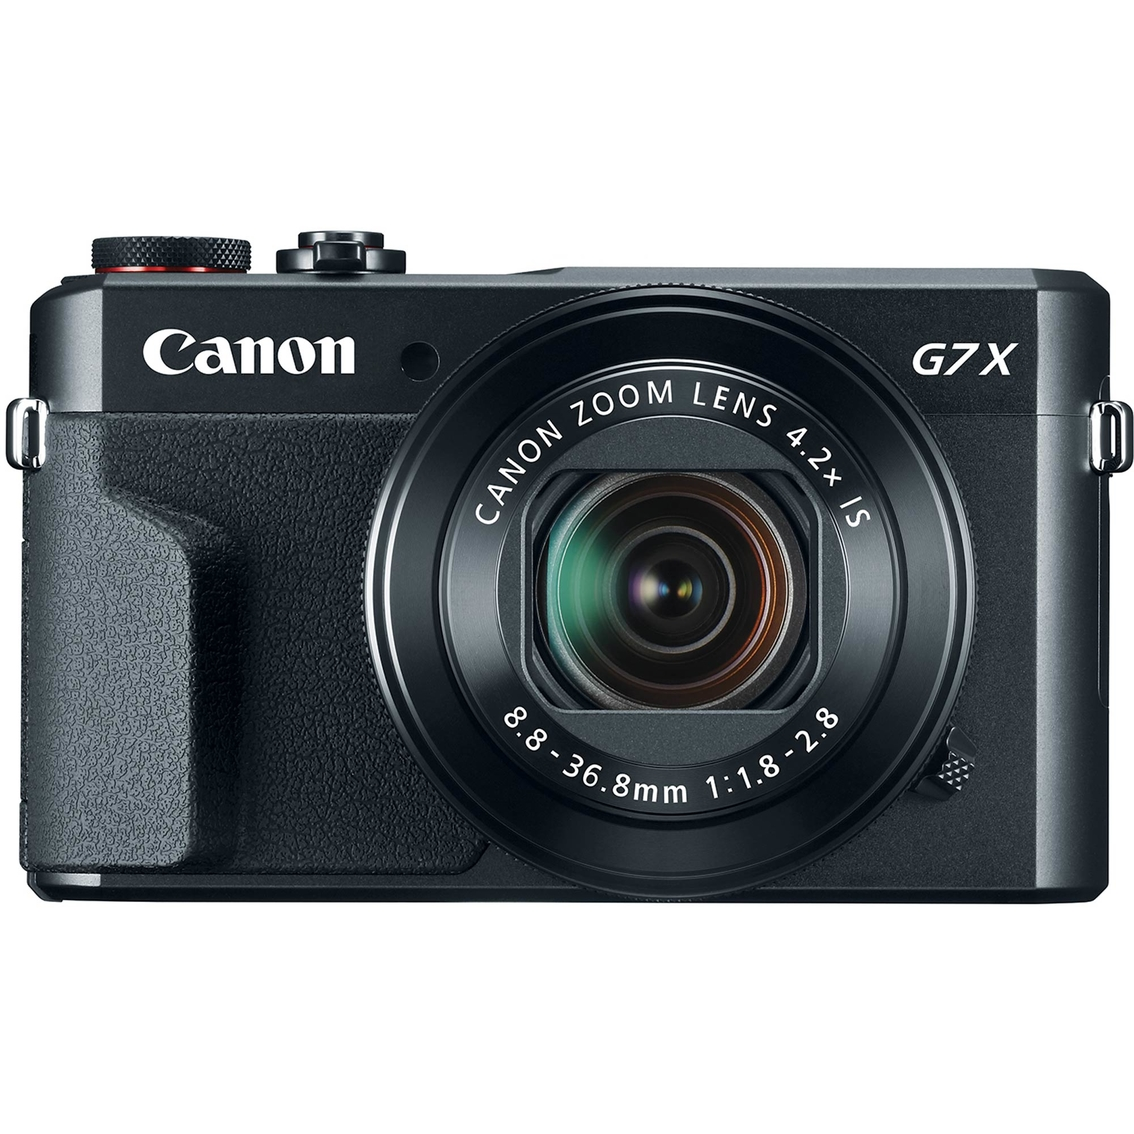 Canon powershot g7 x mark ii camera point & shoot electronics